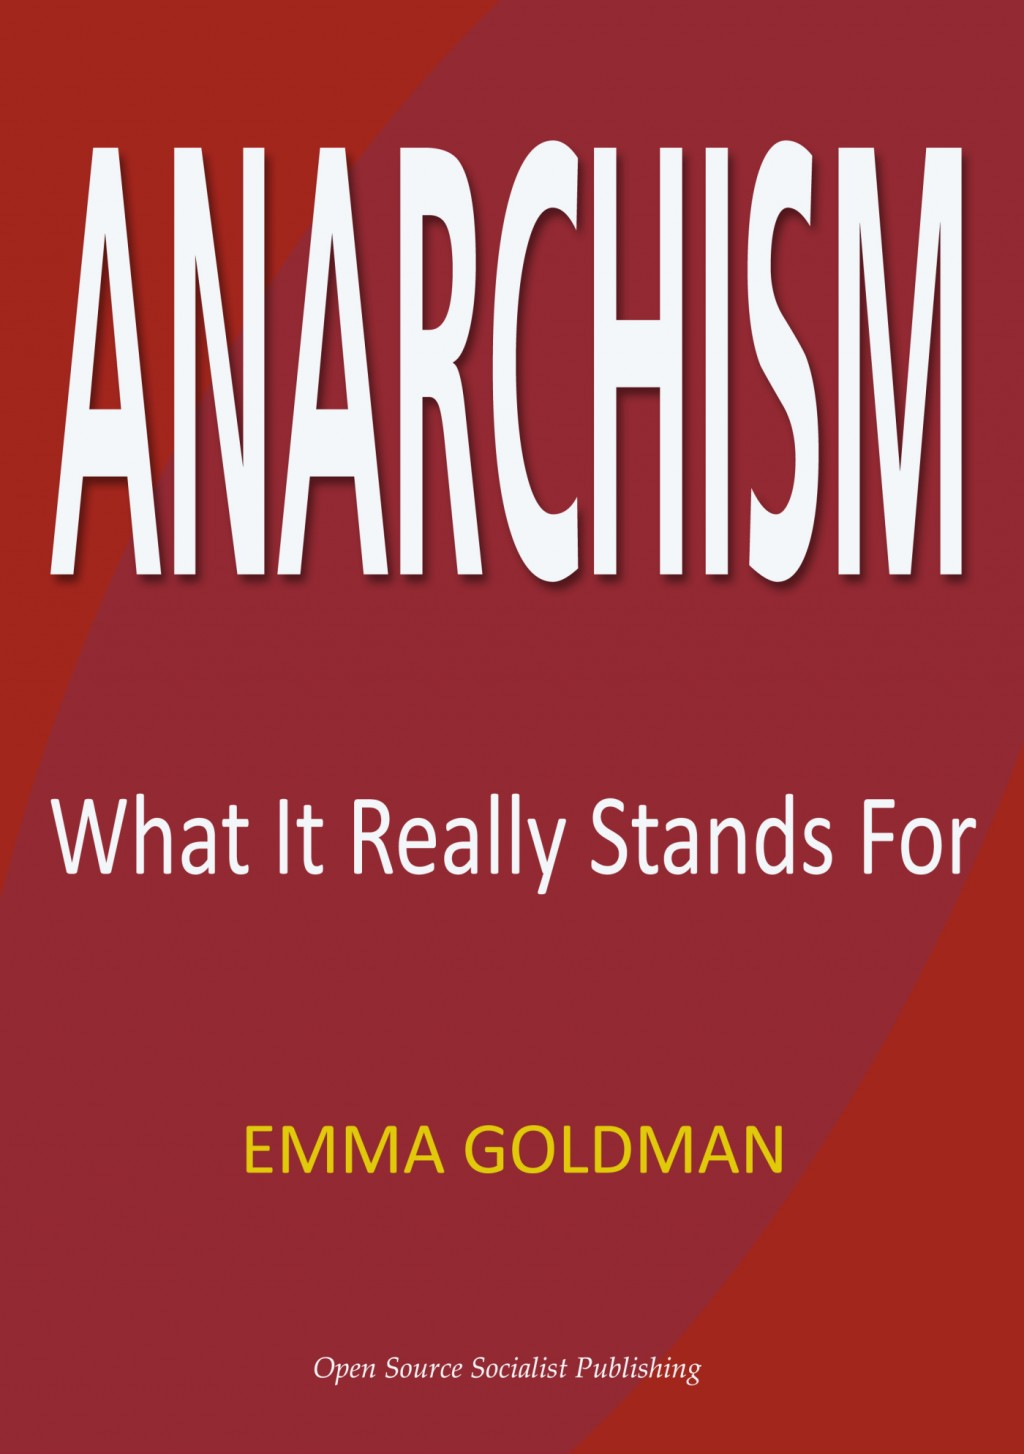 017 Essay Example Anarchism And Other Essays Anarch Wirsf Incredible Emma Goldman Summary Pdf Large